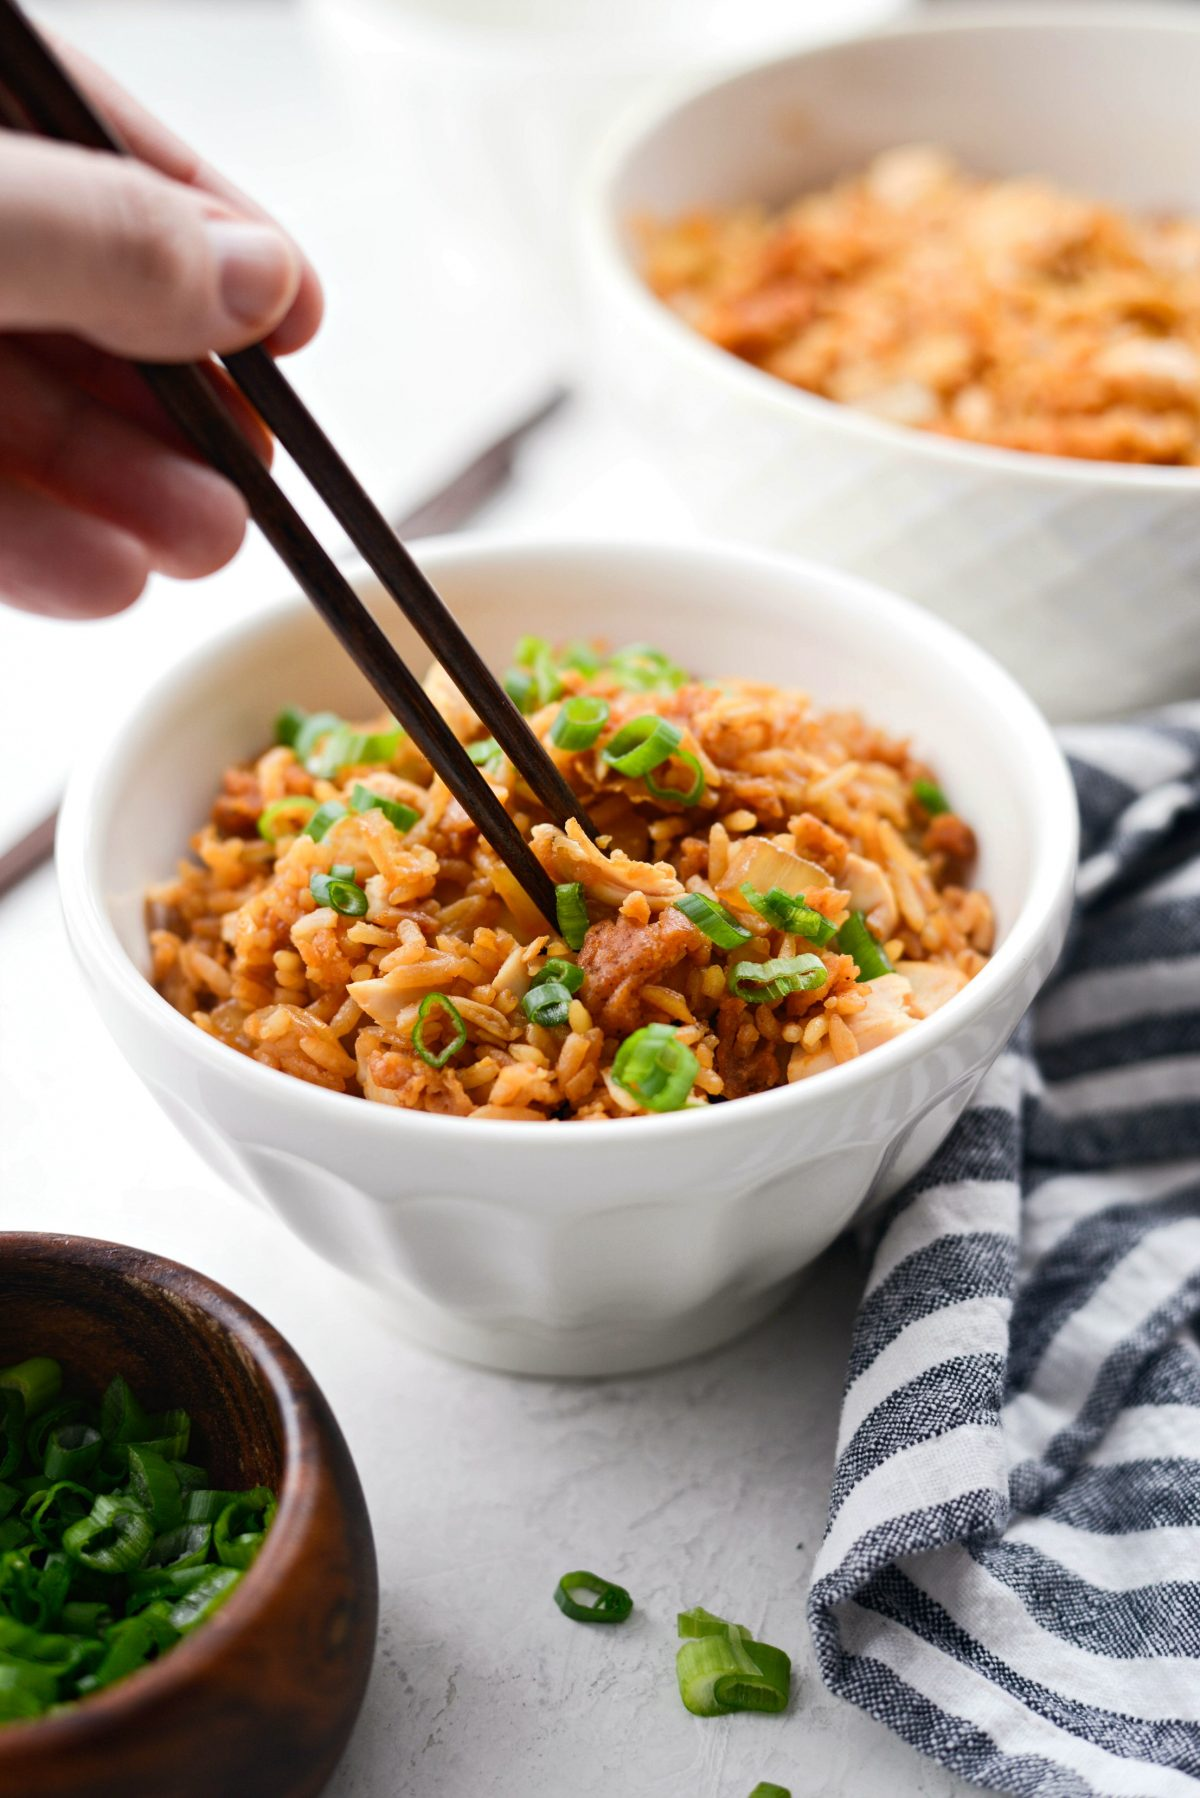 Crispy Fried Chicken Fried Rice l SimplyScratch.com #friedchicken #leftover #rice #friedrice #easy #quick #spicy